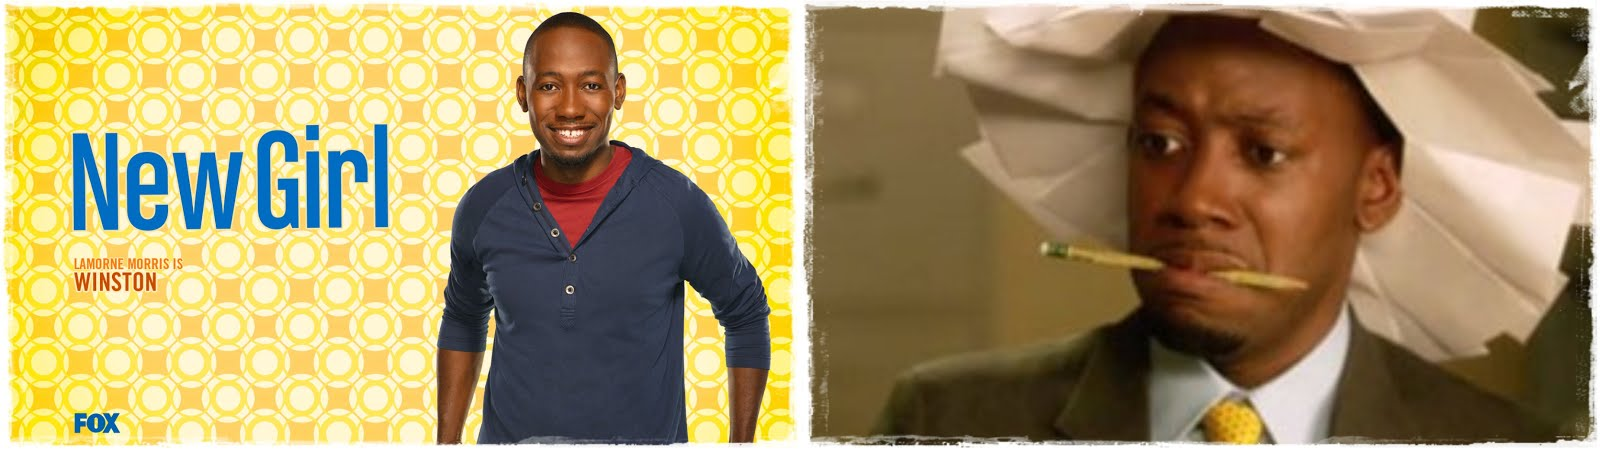 New Girl - Winston Bishop - Lamorne Morris